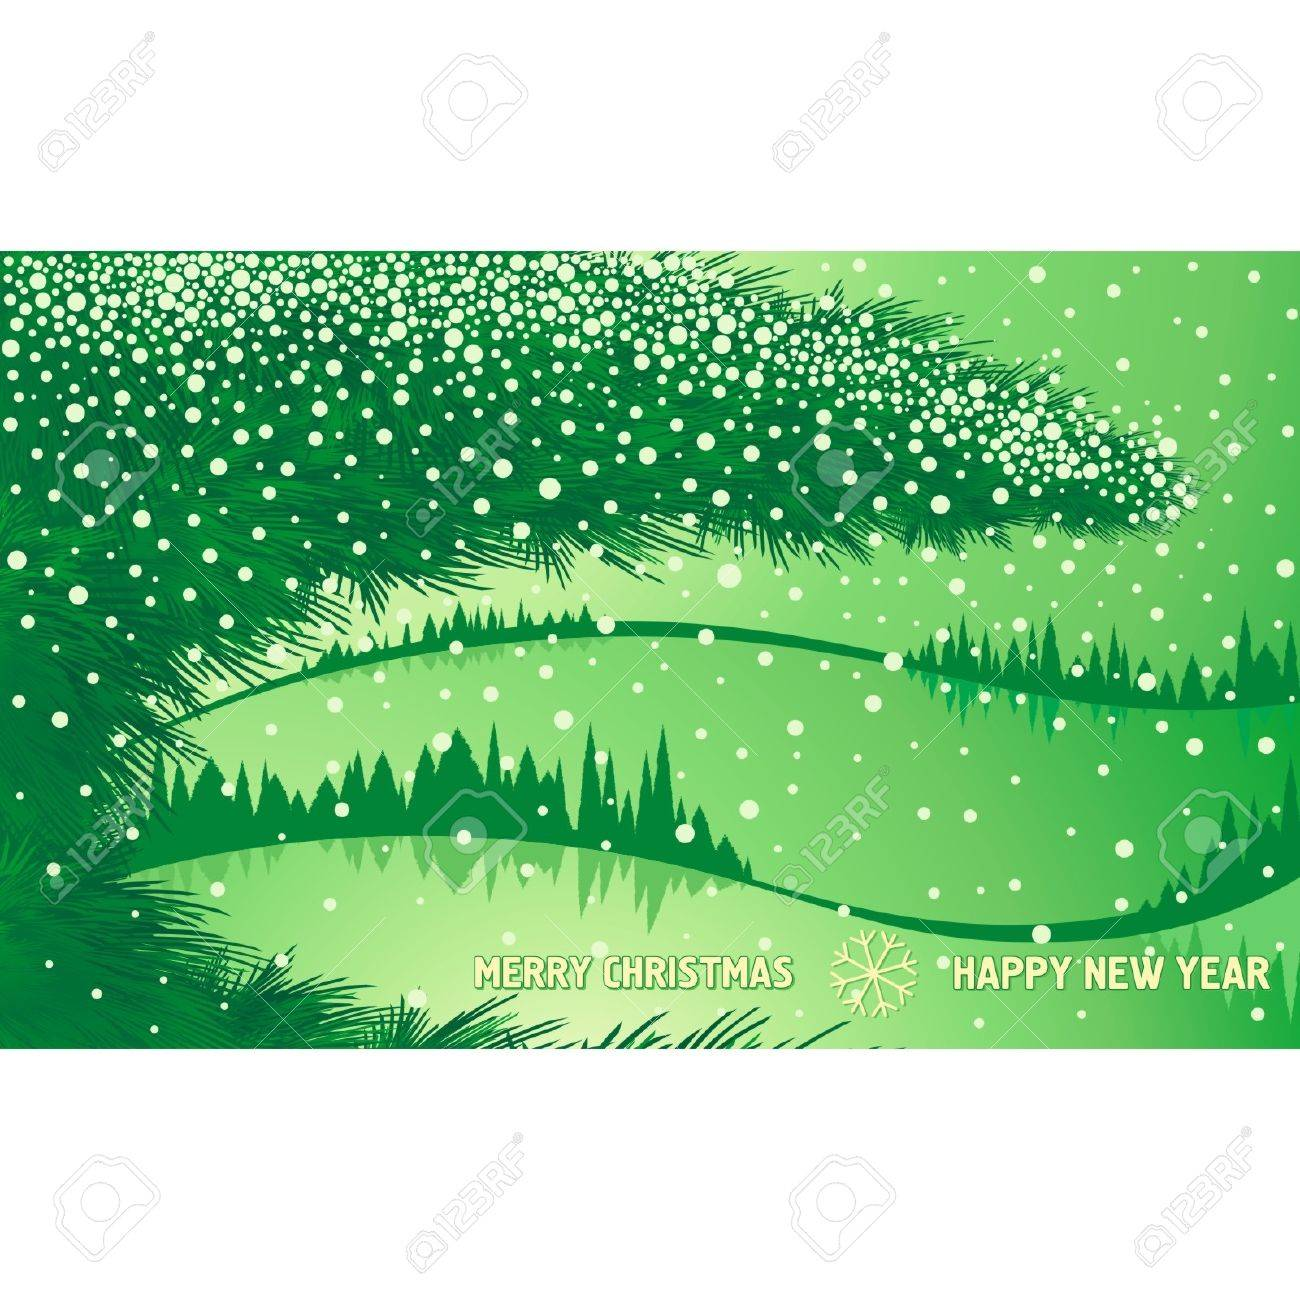 Green Christmas winter forest with tree branch and text Stock Vector - 16373883